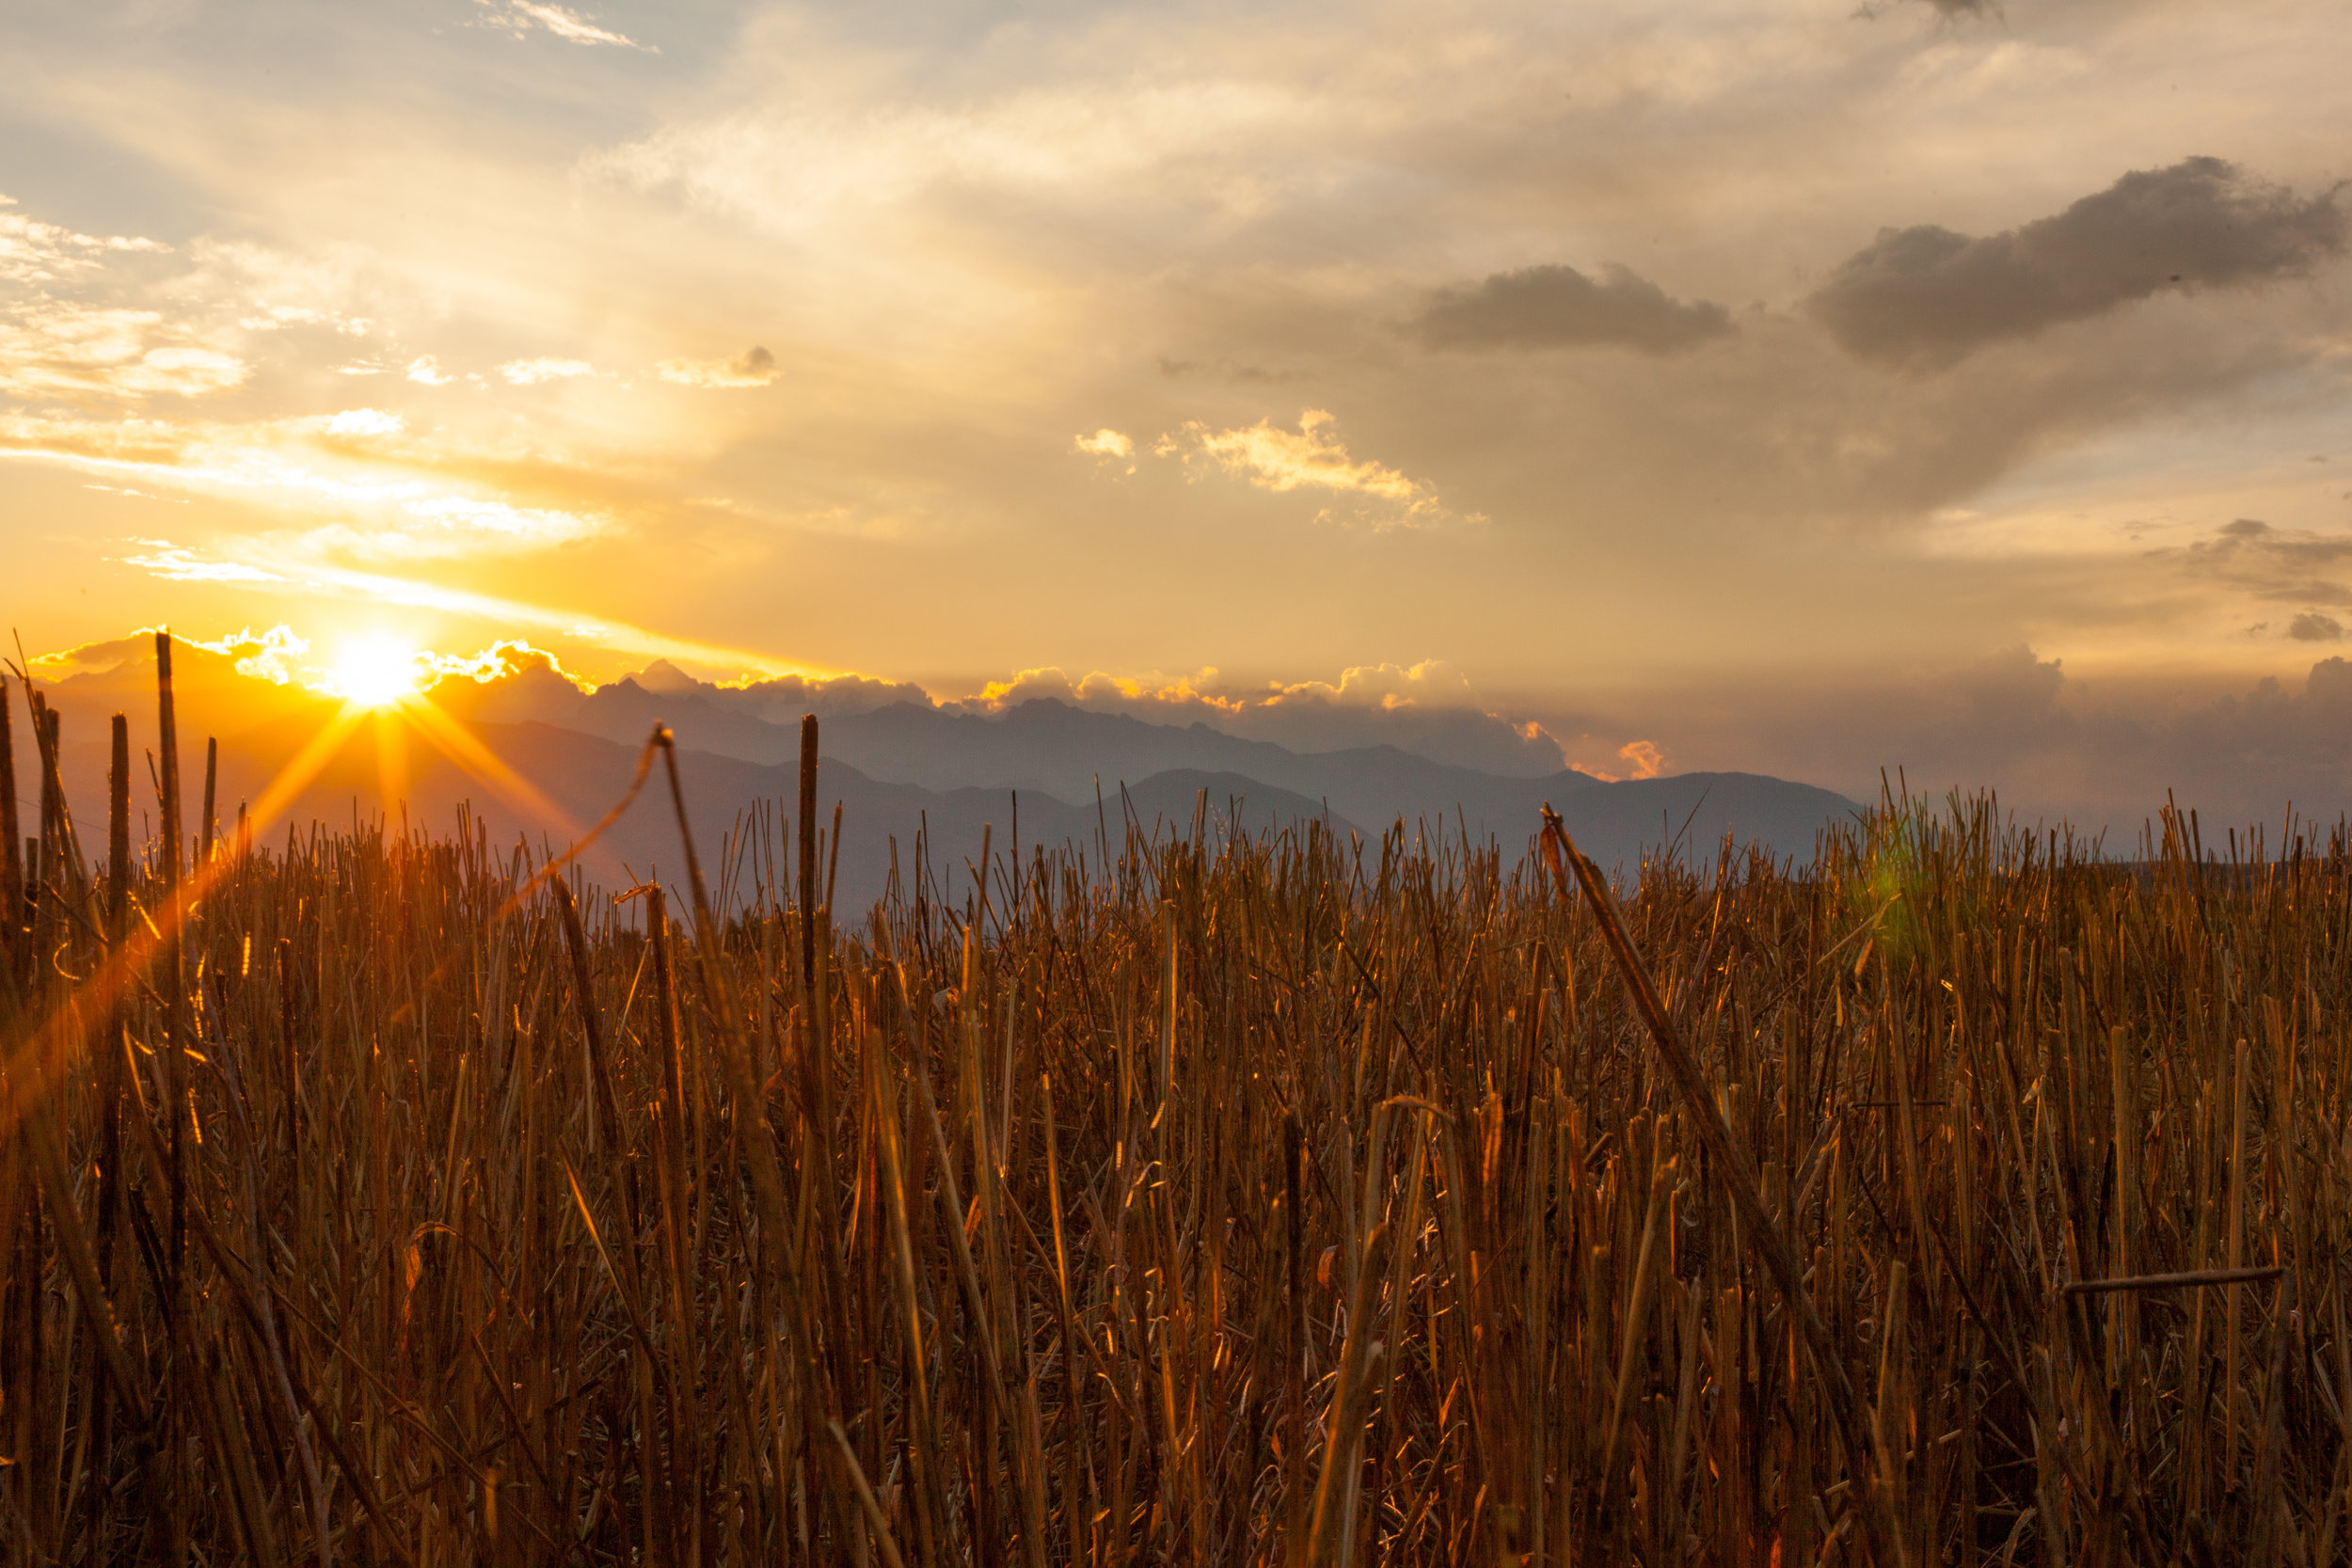 The sun sets across a farmers field in the sacred valley in Peru, South America.